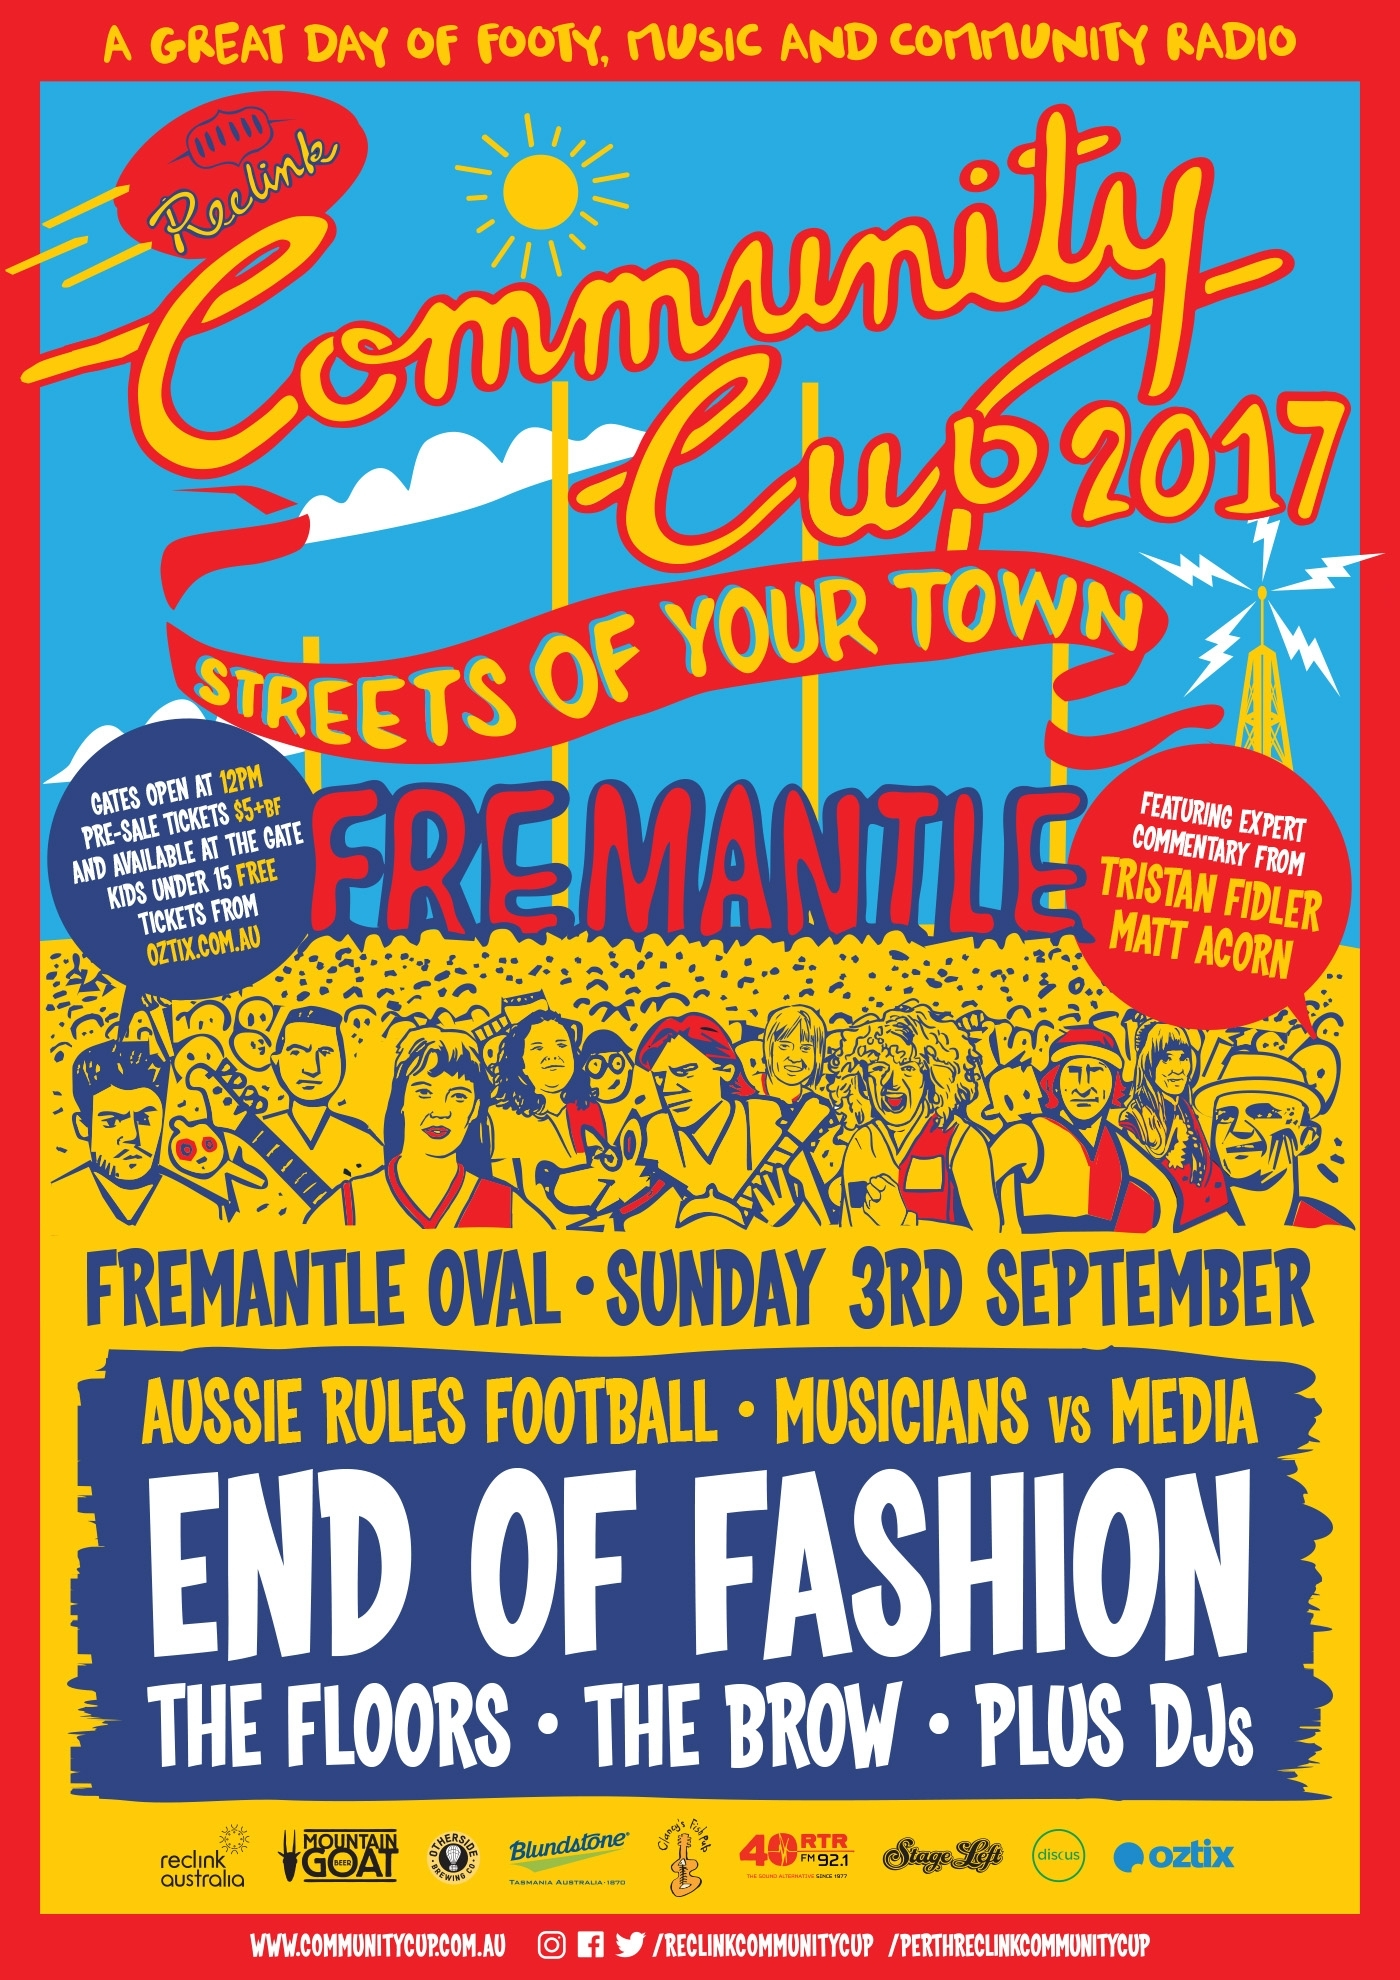 Perth Reclink Community Cup 2017 « Rtrfm / The Sound Alternative intended for September Content Calender Aus Perth